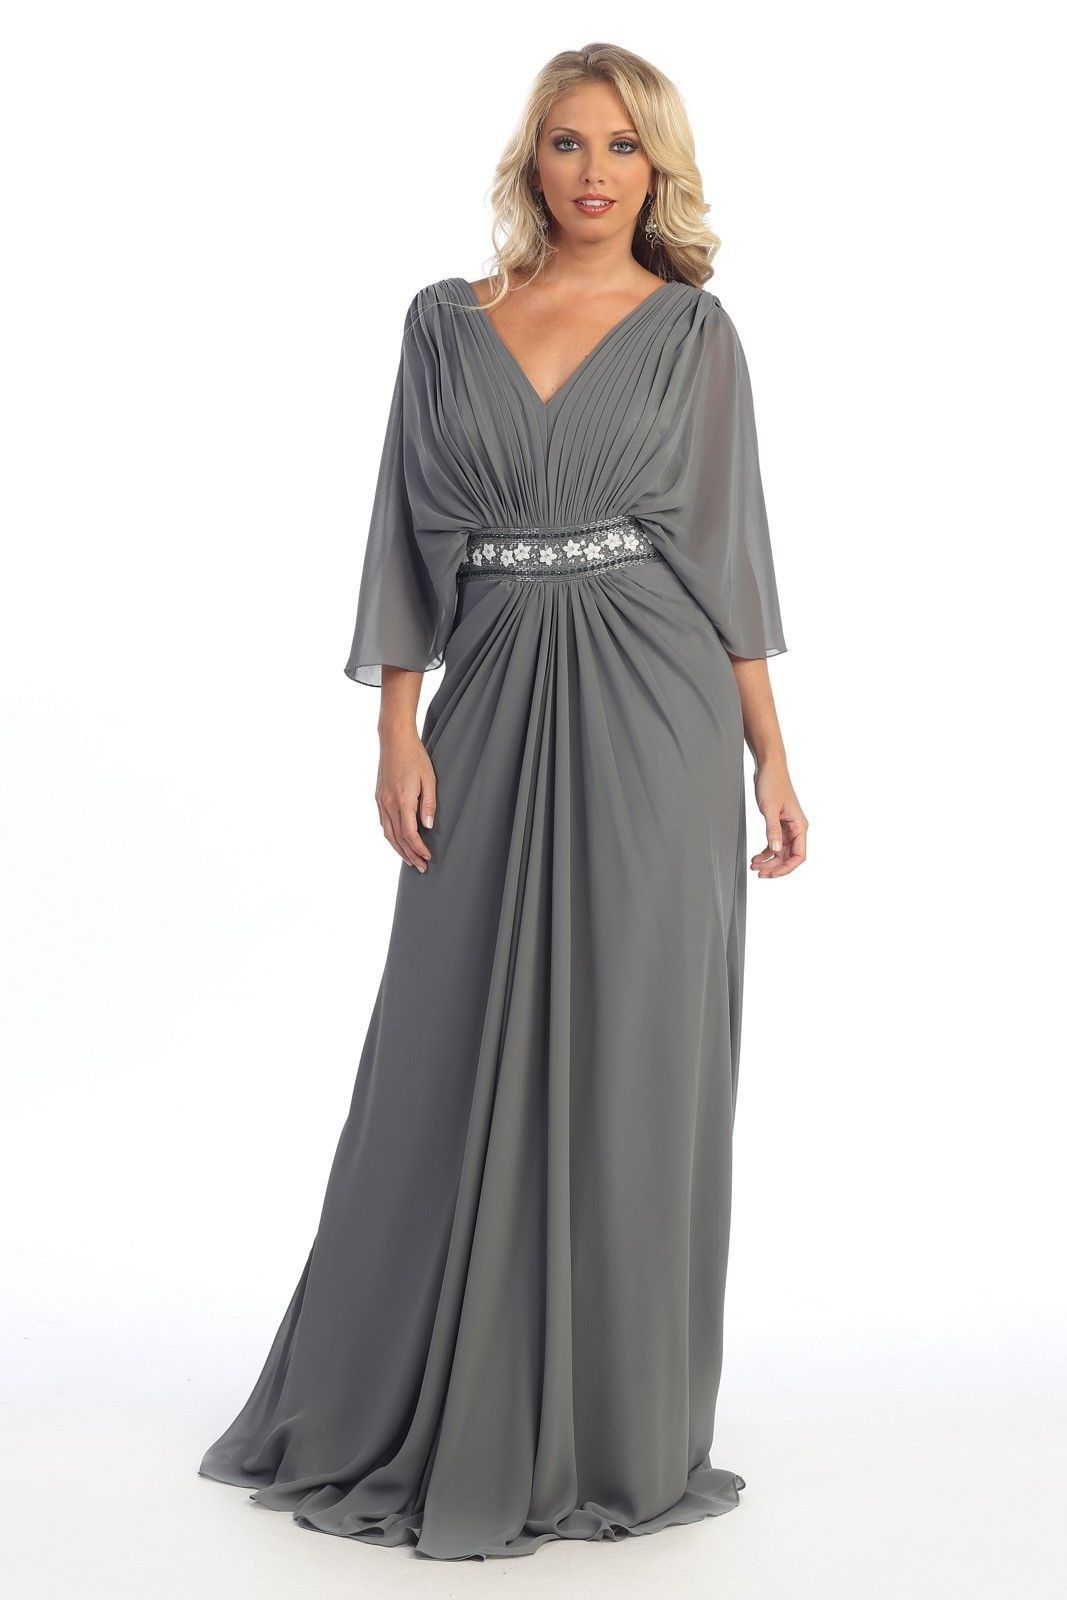 9b04e580174b Plus Size Wedding Guest Dresses  plus size wedding guest dresses with  sleeves